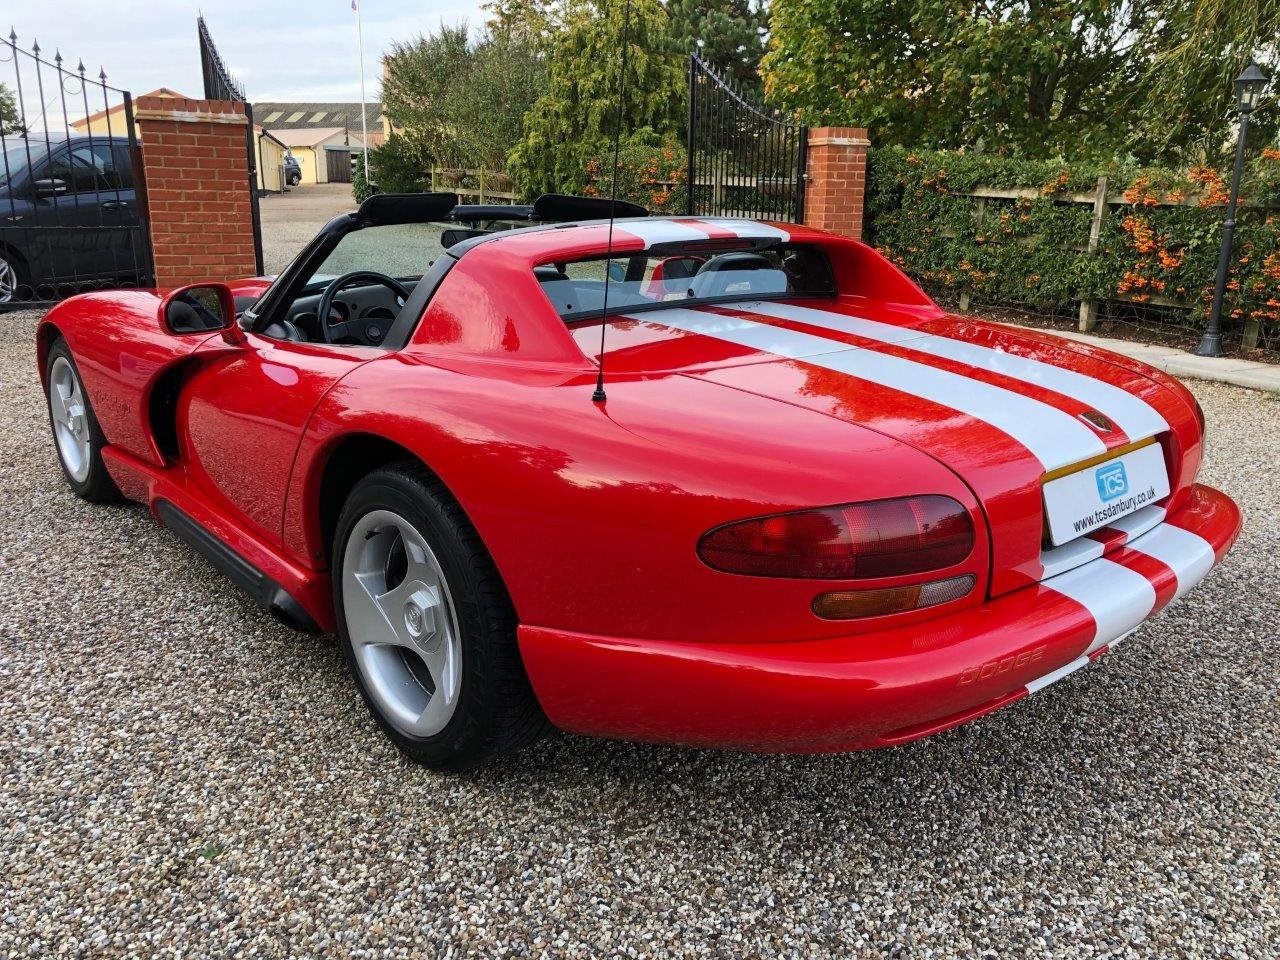 1992 Dodge Viper RT/10 8.0L V10 400bhp 6-Speed Manual For Sale (picture 2 of 6)